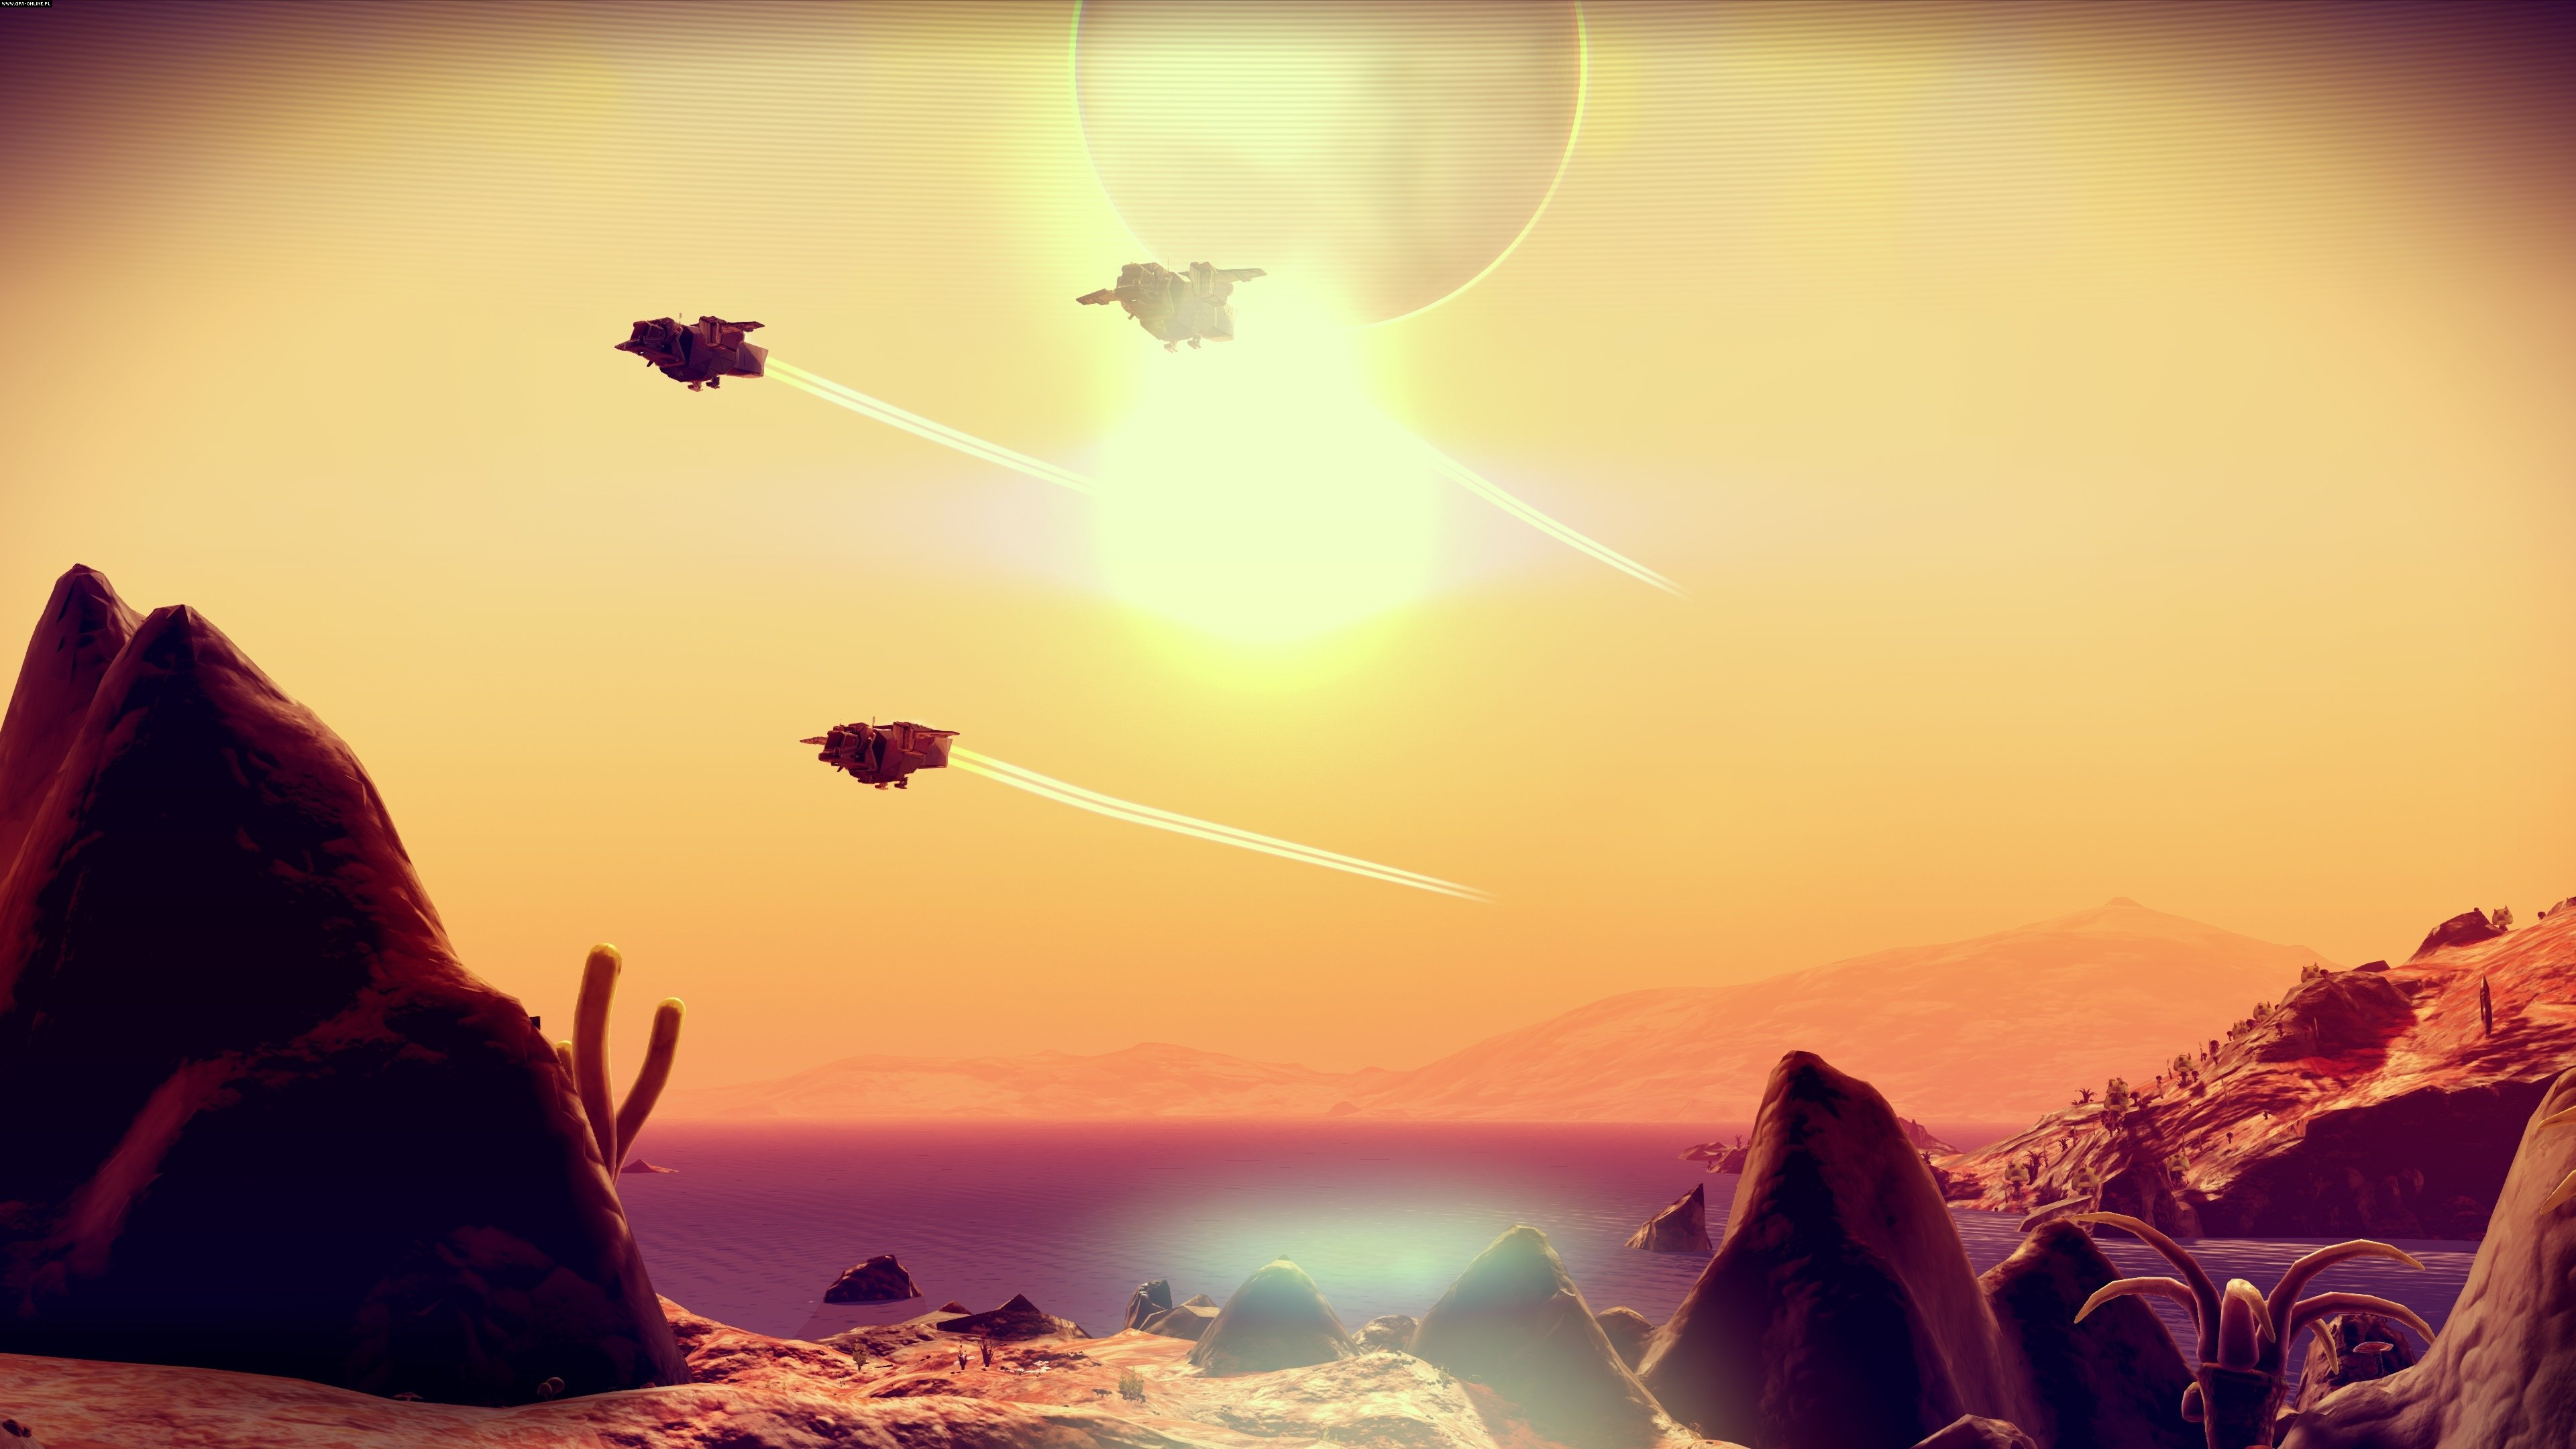 No Man's Sky PC, PS4 Games Image 7/35, Hello Games, Sony Interactive Entertainment